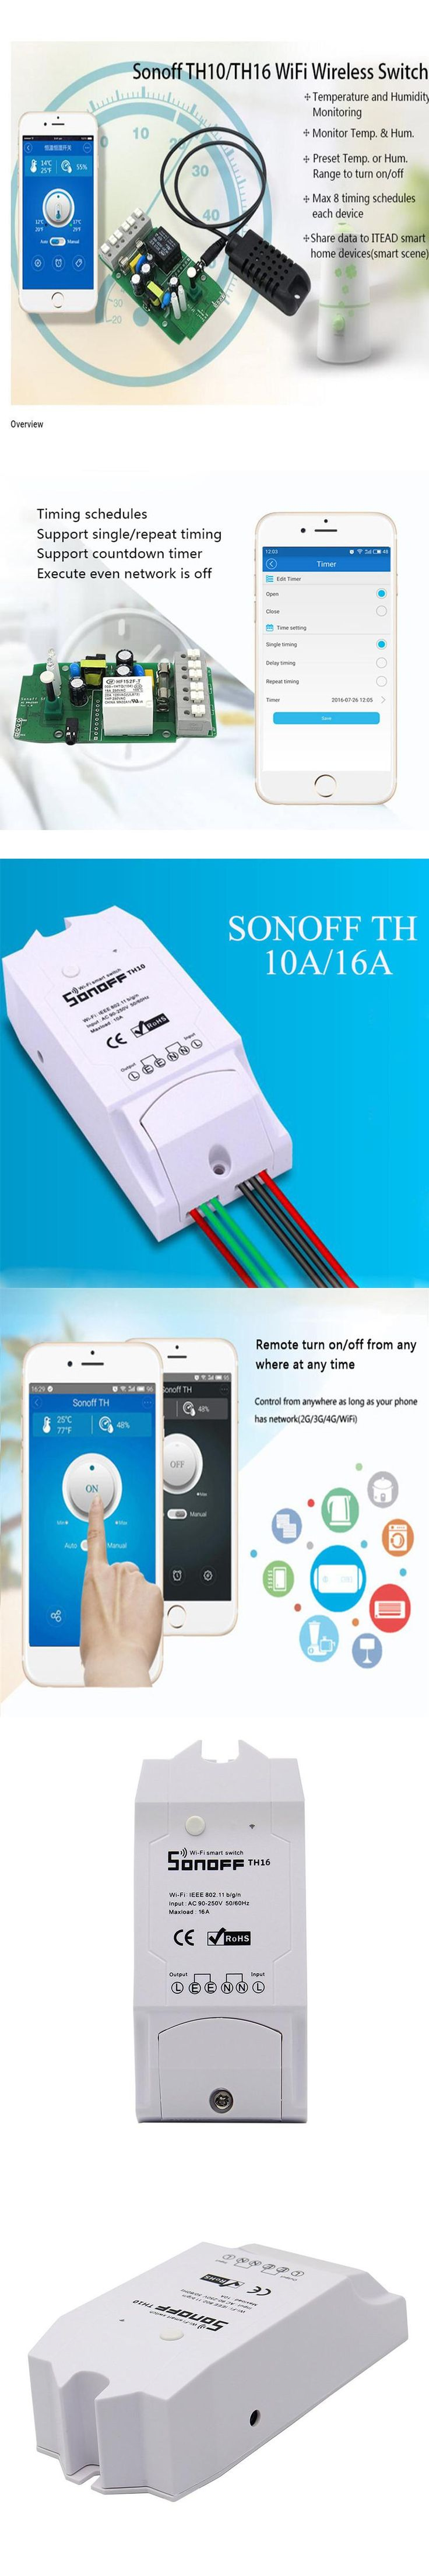 Sonoff TH10/TH16 WiFi Smart Switch Temperature And Humidity Monitoring Controller Sensor with Timing Function Hot Sale